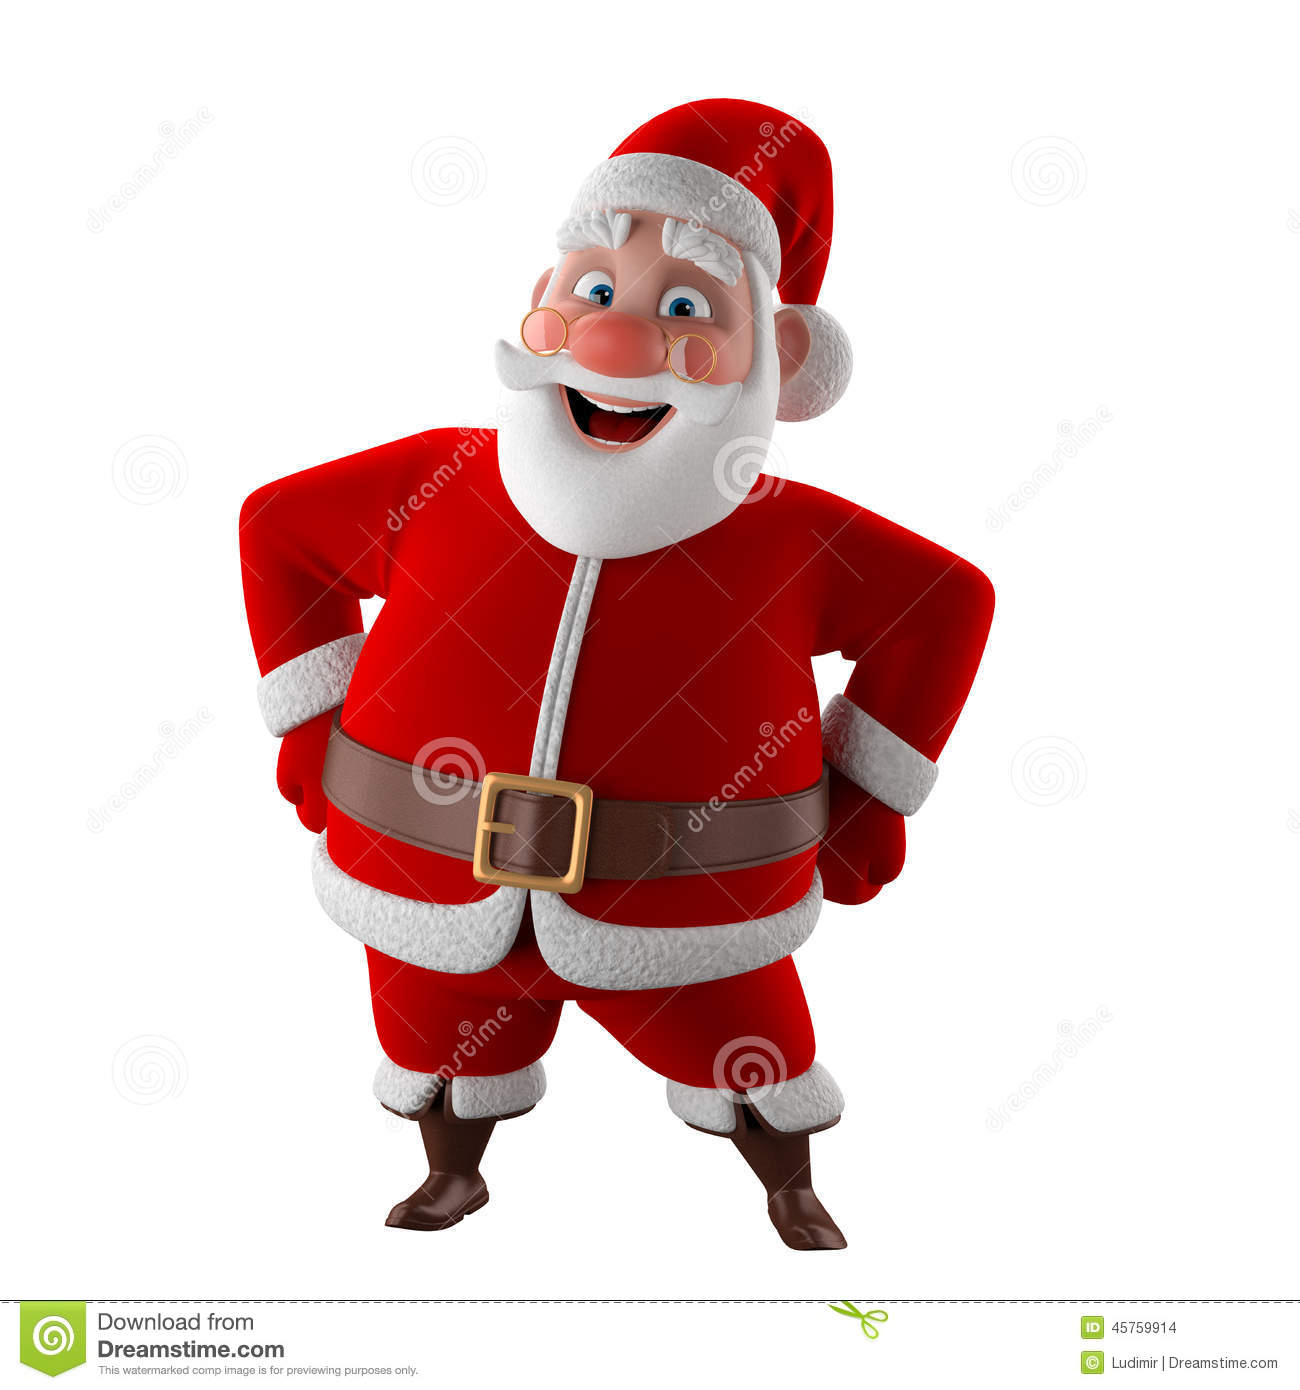 Image De Noel 3d.Cheerful 3d Model Of Santa Claus Happy Christmas Icon